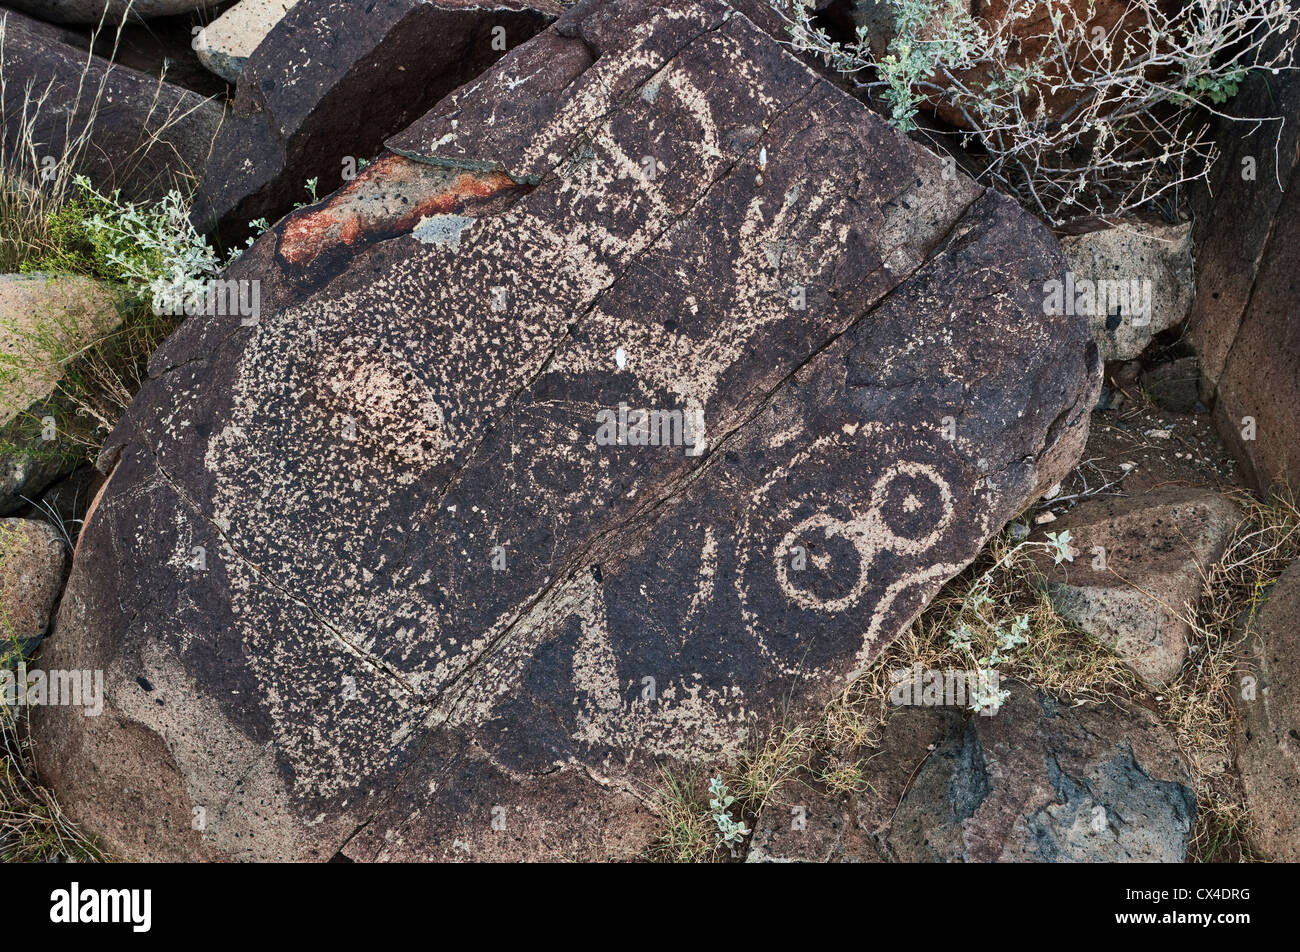 Jornada Mogollon style rock art at Three Rivers Petroglyph Site, Chihuahuan Desert near Sierra Blanca, New Mexico, - Stock Image